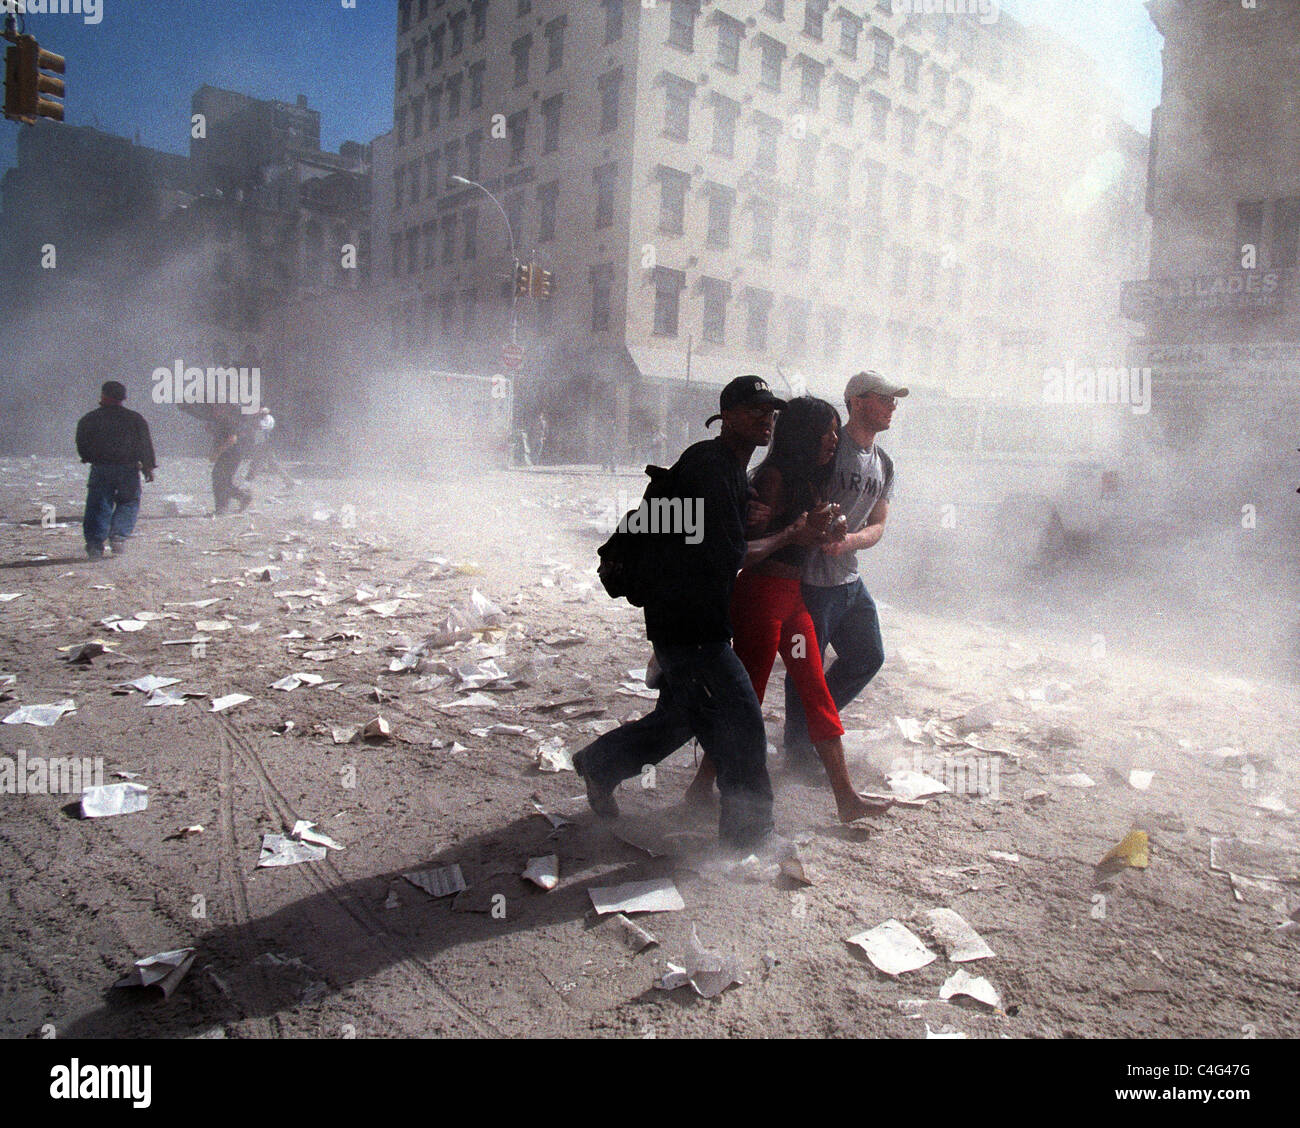 People attempt to escape the debris and concrete dust in the air on September 11, 2001 after WTC terrorist attack - Stock Image